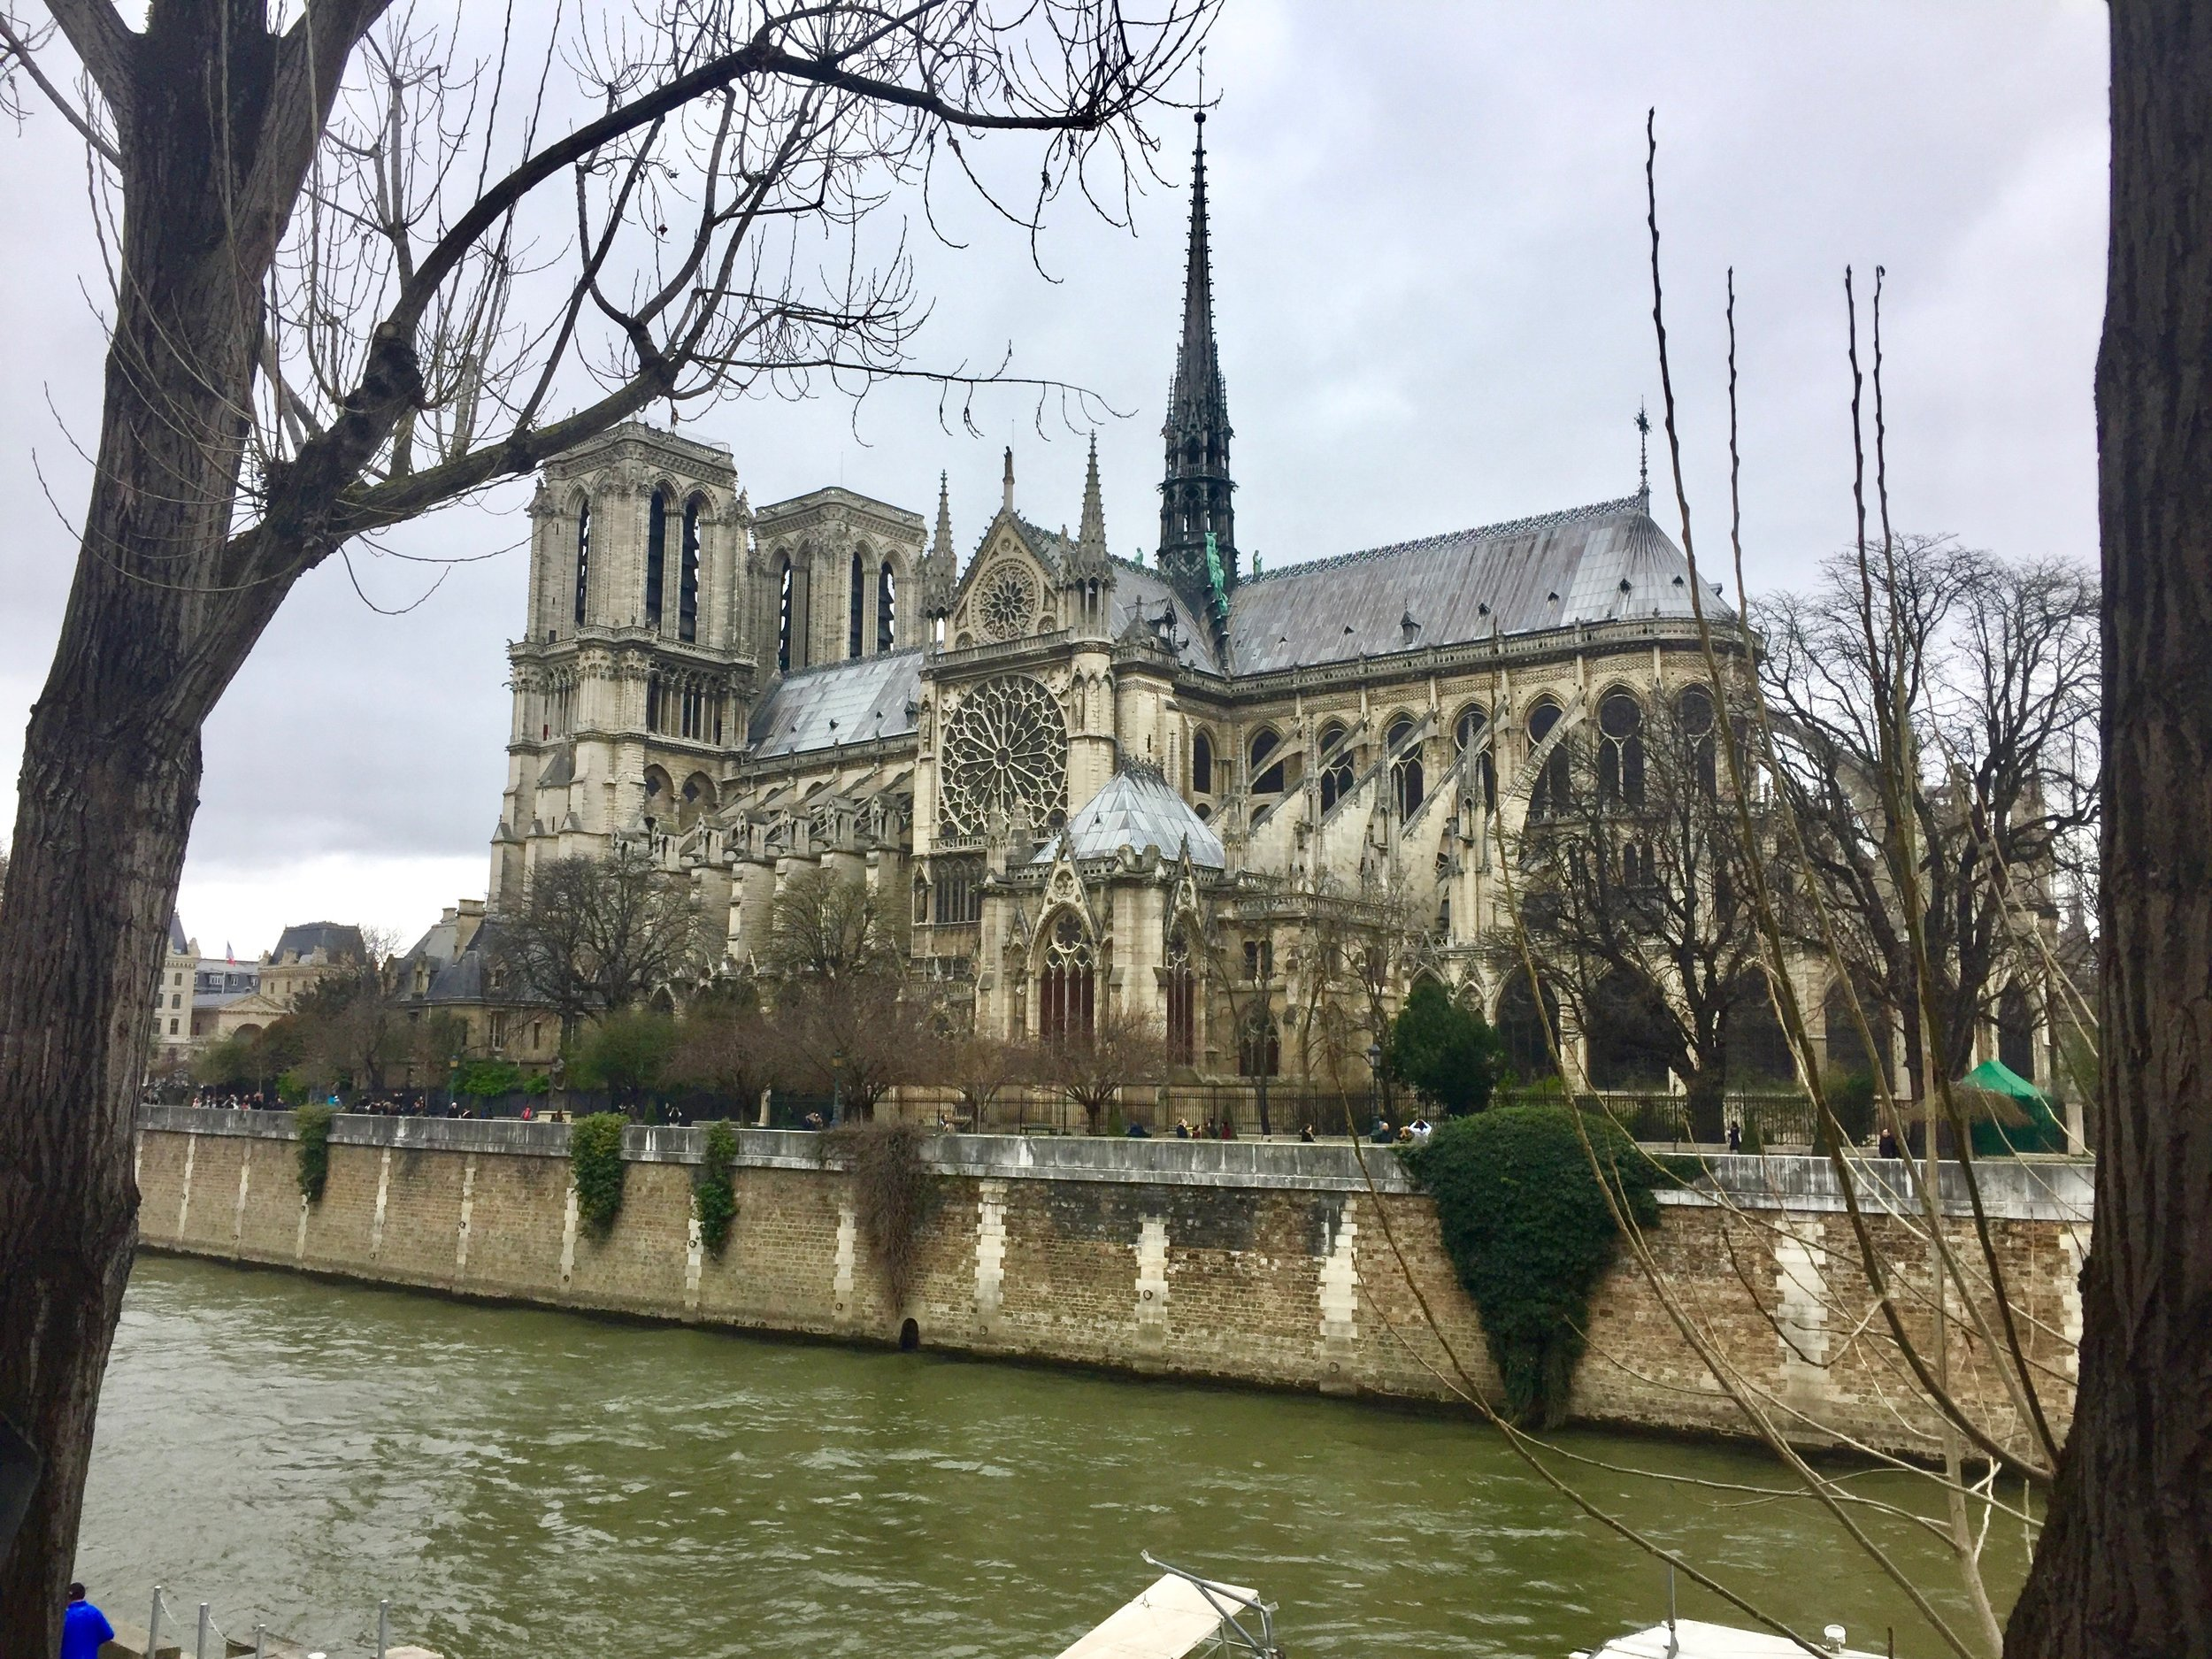 Our last visit to Notre Dame, March 2017